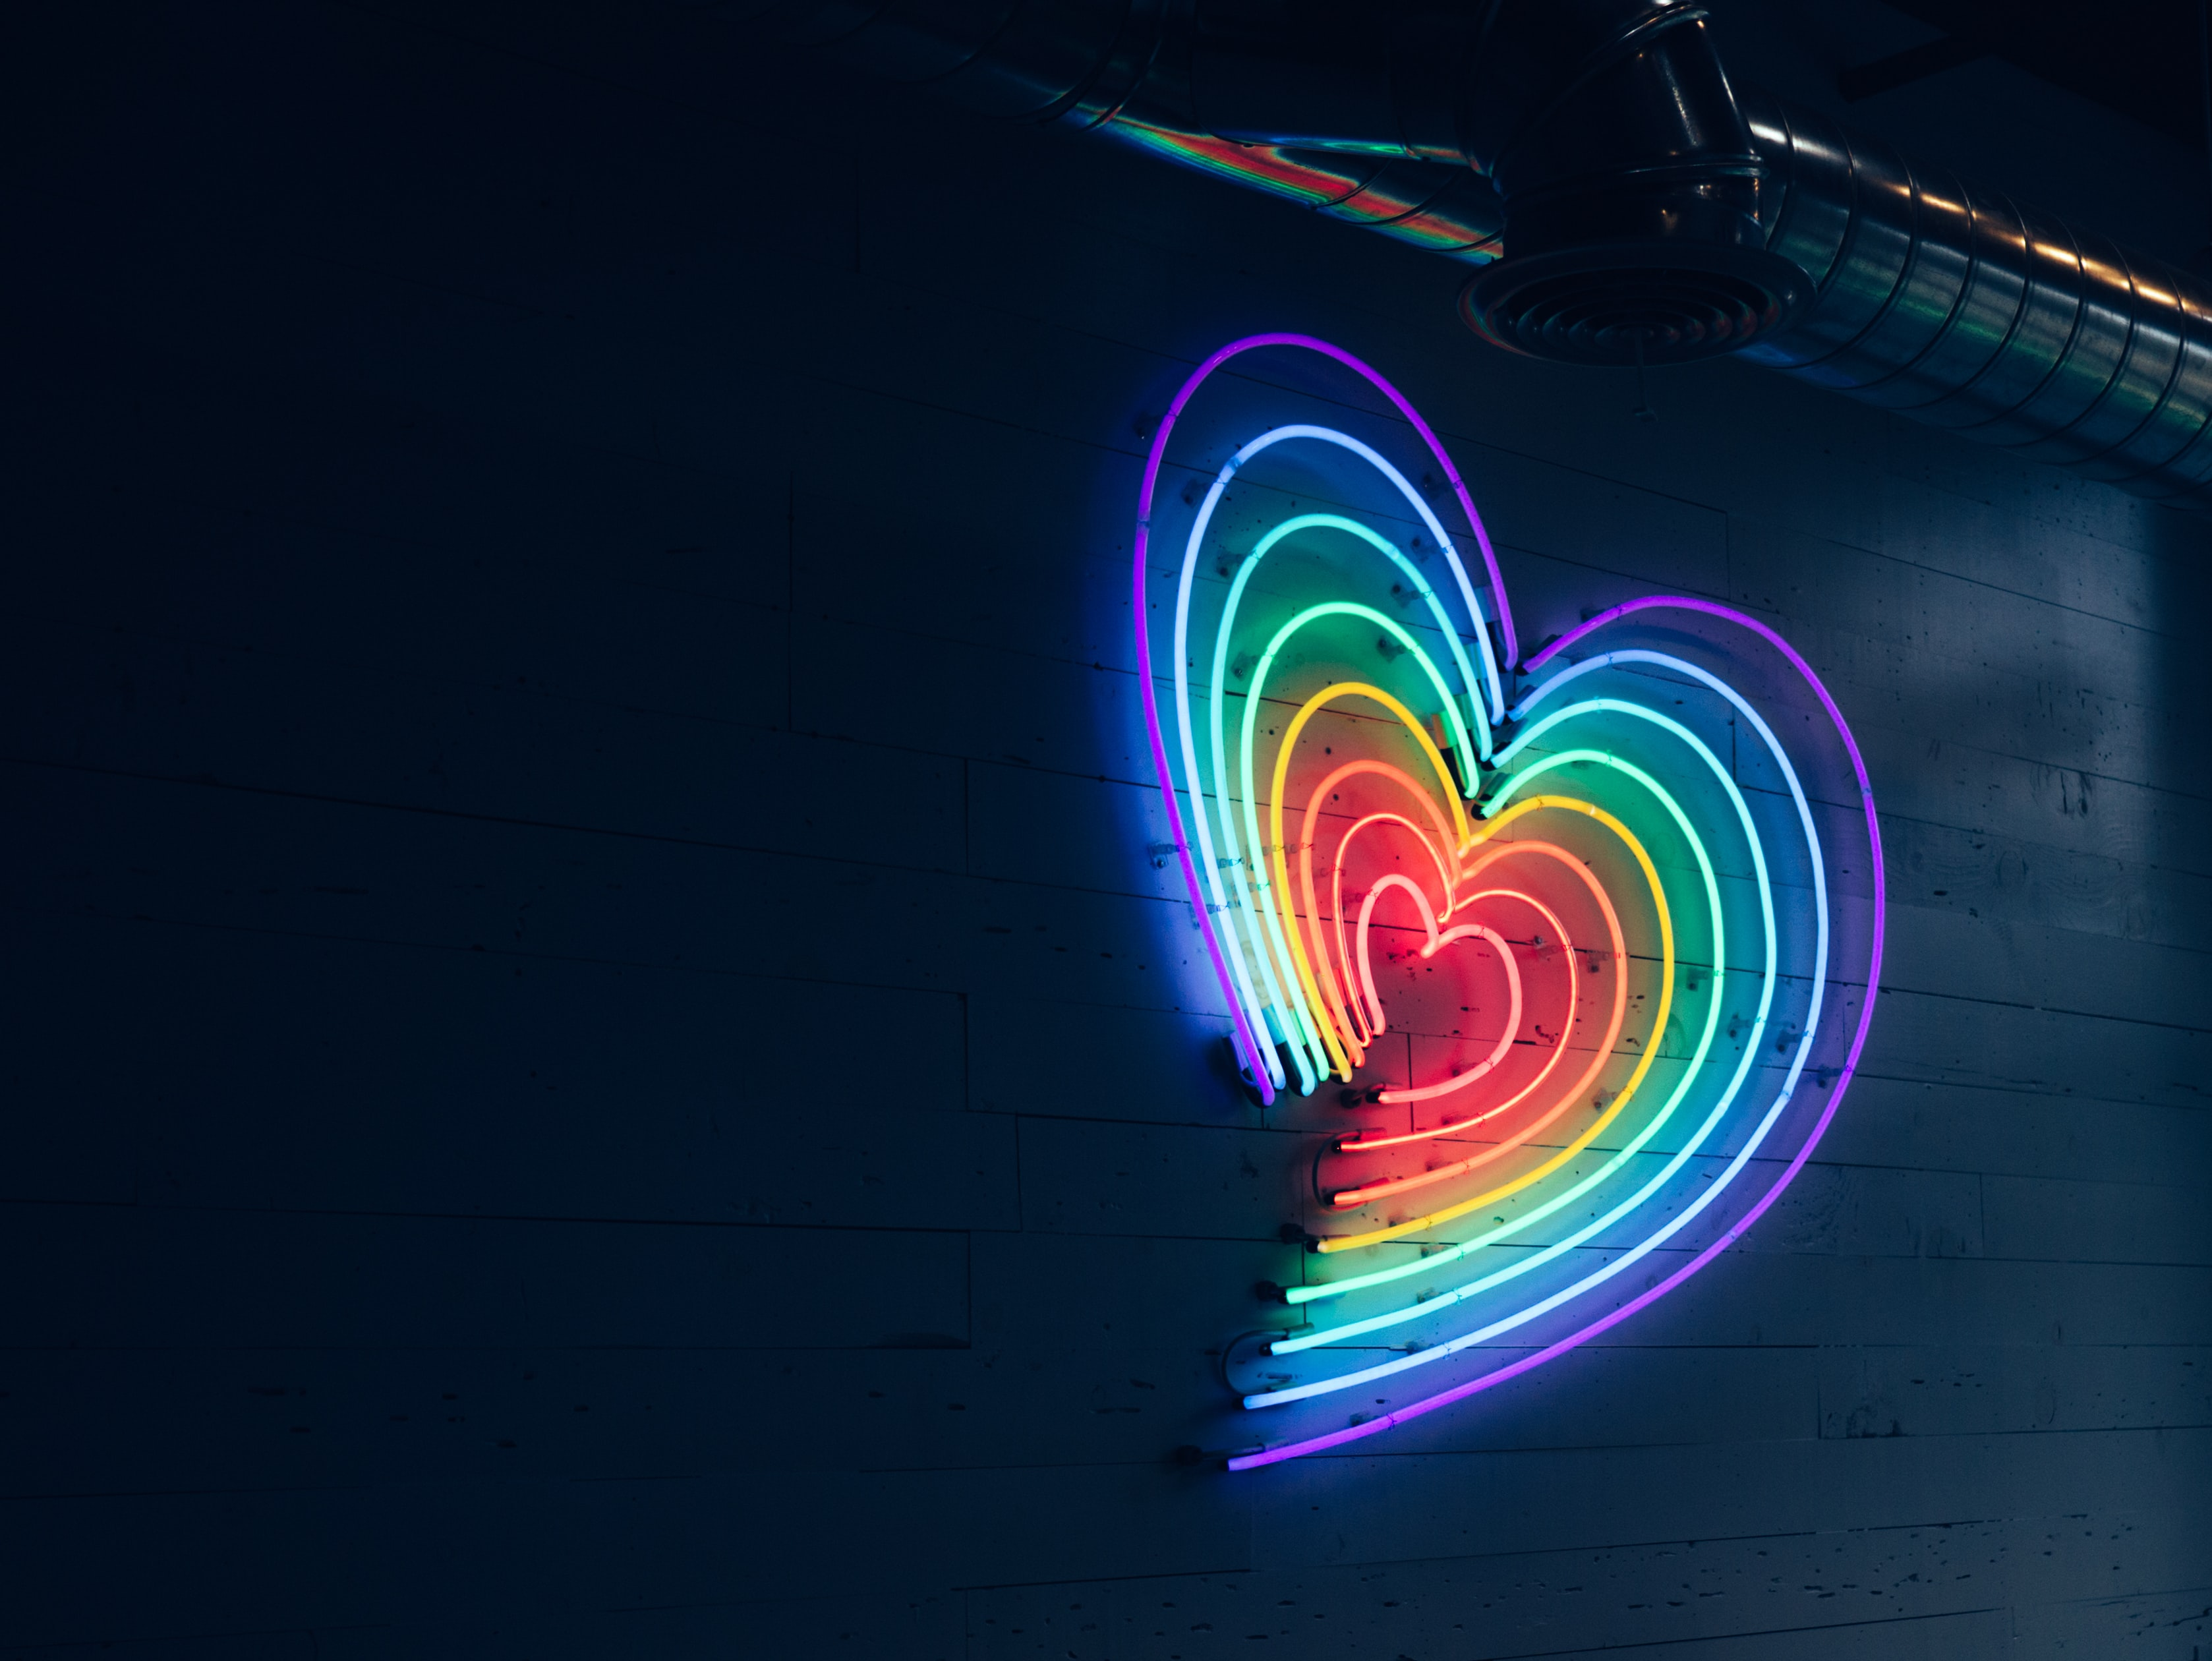 multicolored heart LED light on wall